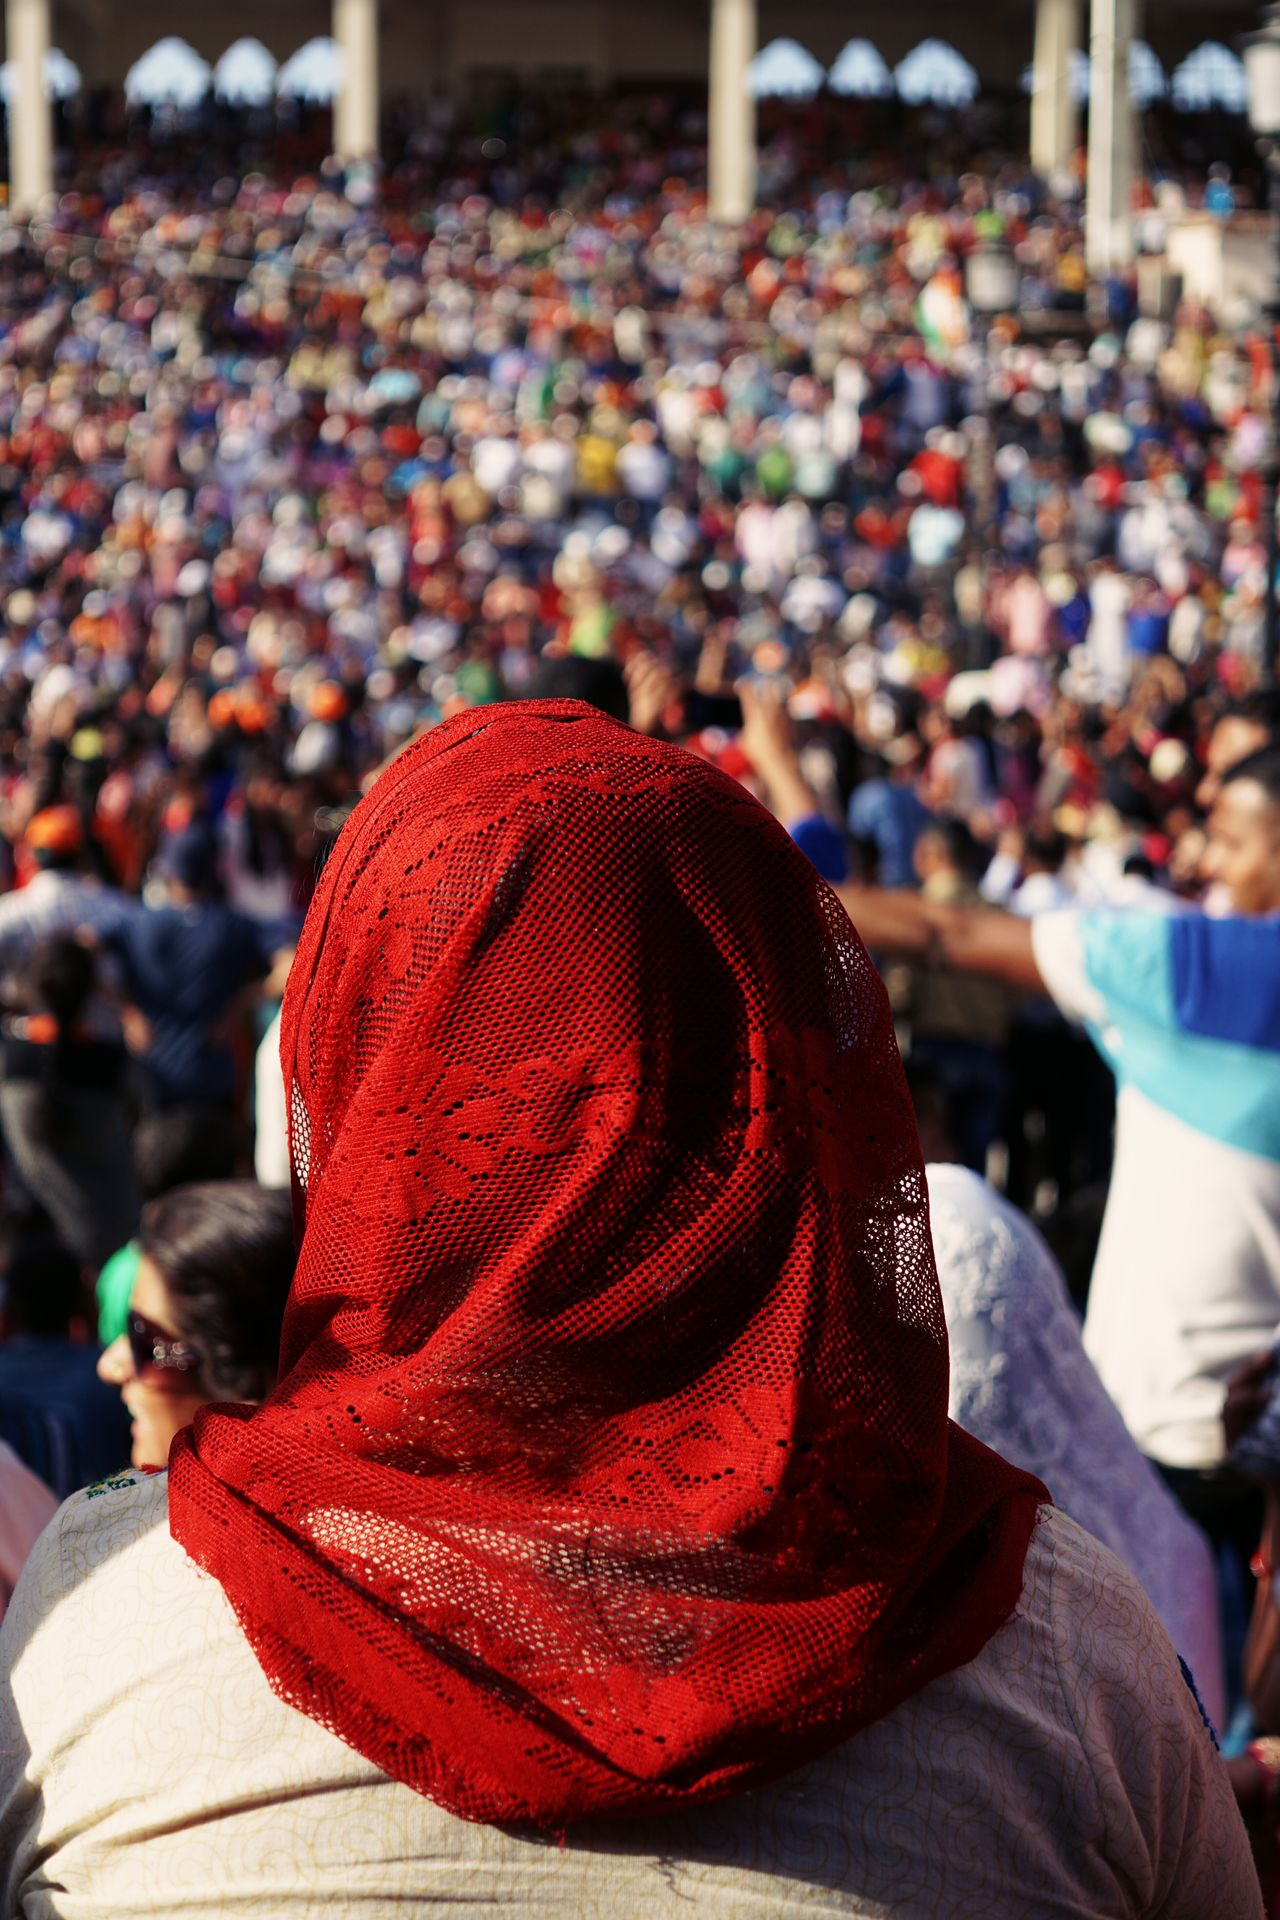 Hat Crowd Red Spectator Real People People Tradition Outdoors Traditional Clothing Stadium Close-up Adults Only Only Men Men Adult Audience Day Fan - Enthusiast Headwear Young Adult